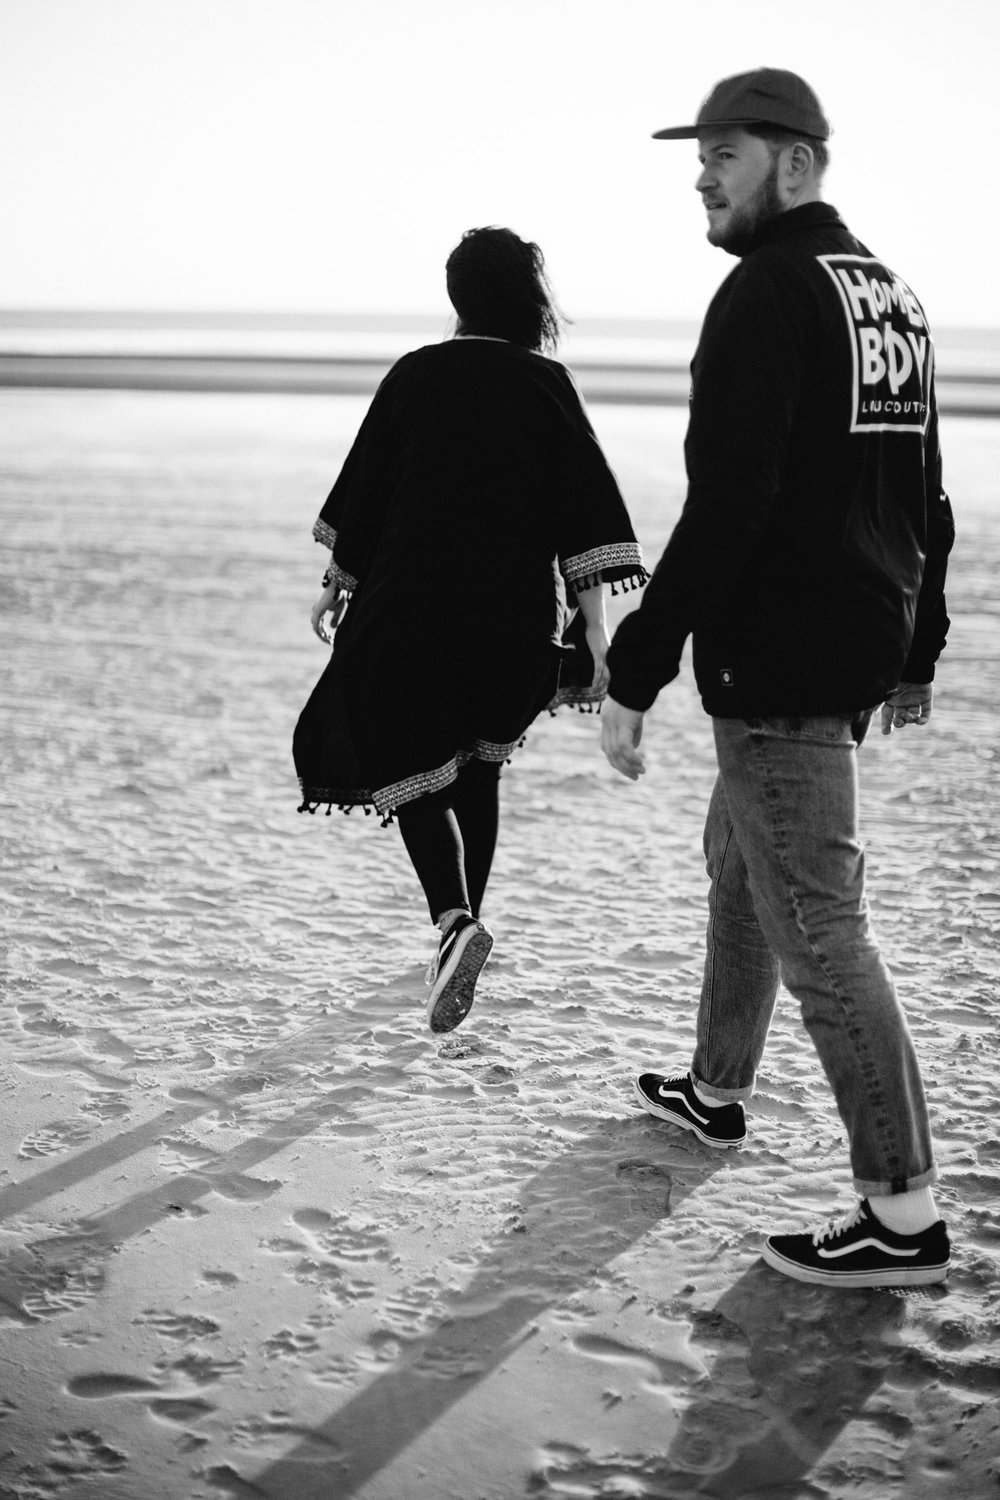 Sankt-Peter-Ording-Engagement-Pia-Anna-Christian-Wedding-Photography-KT-42.jpg